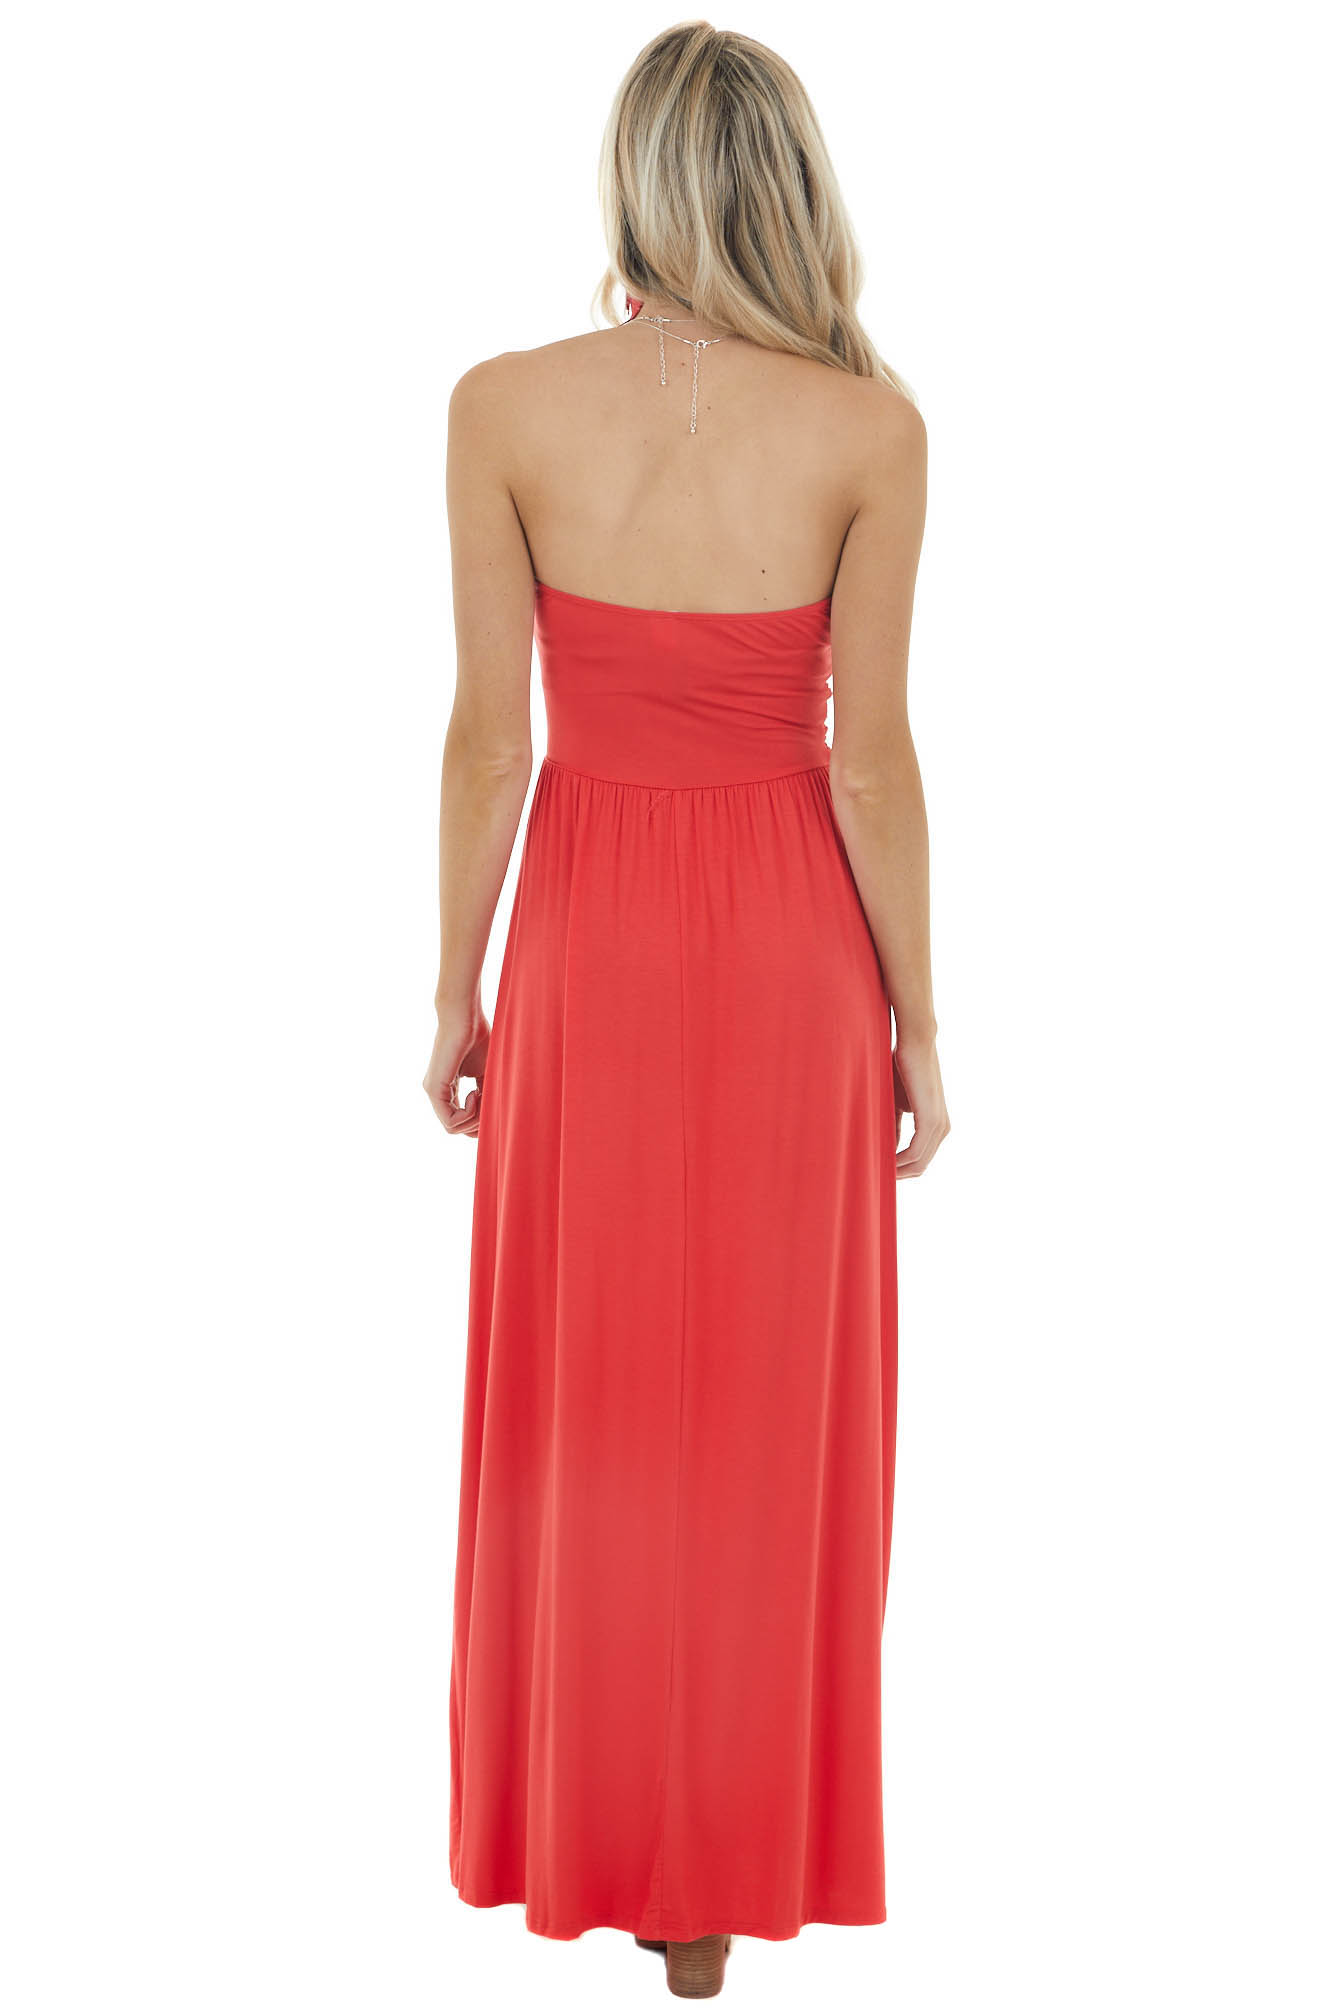 Crimson Red Strapless Maxi Dress with Ruching Details